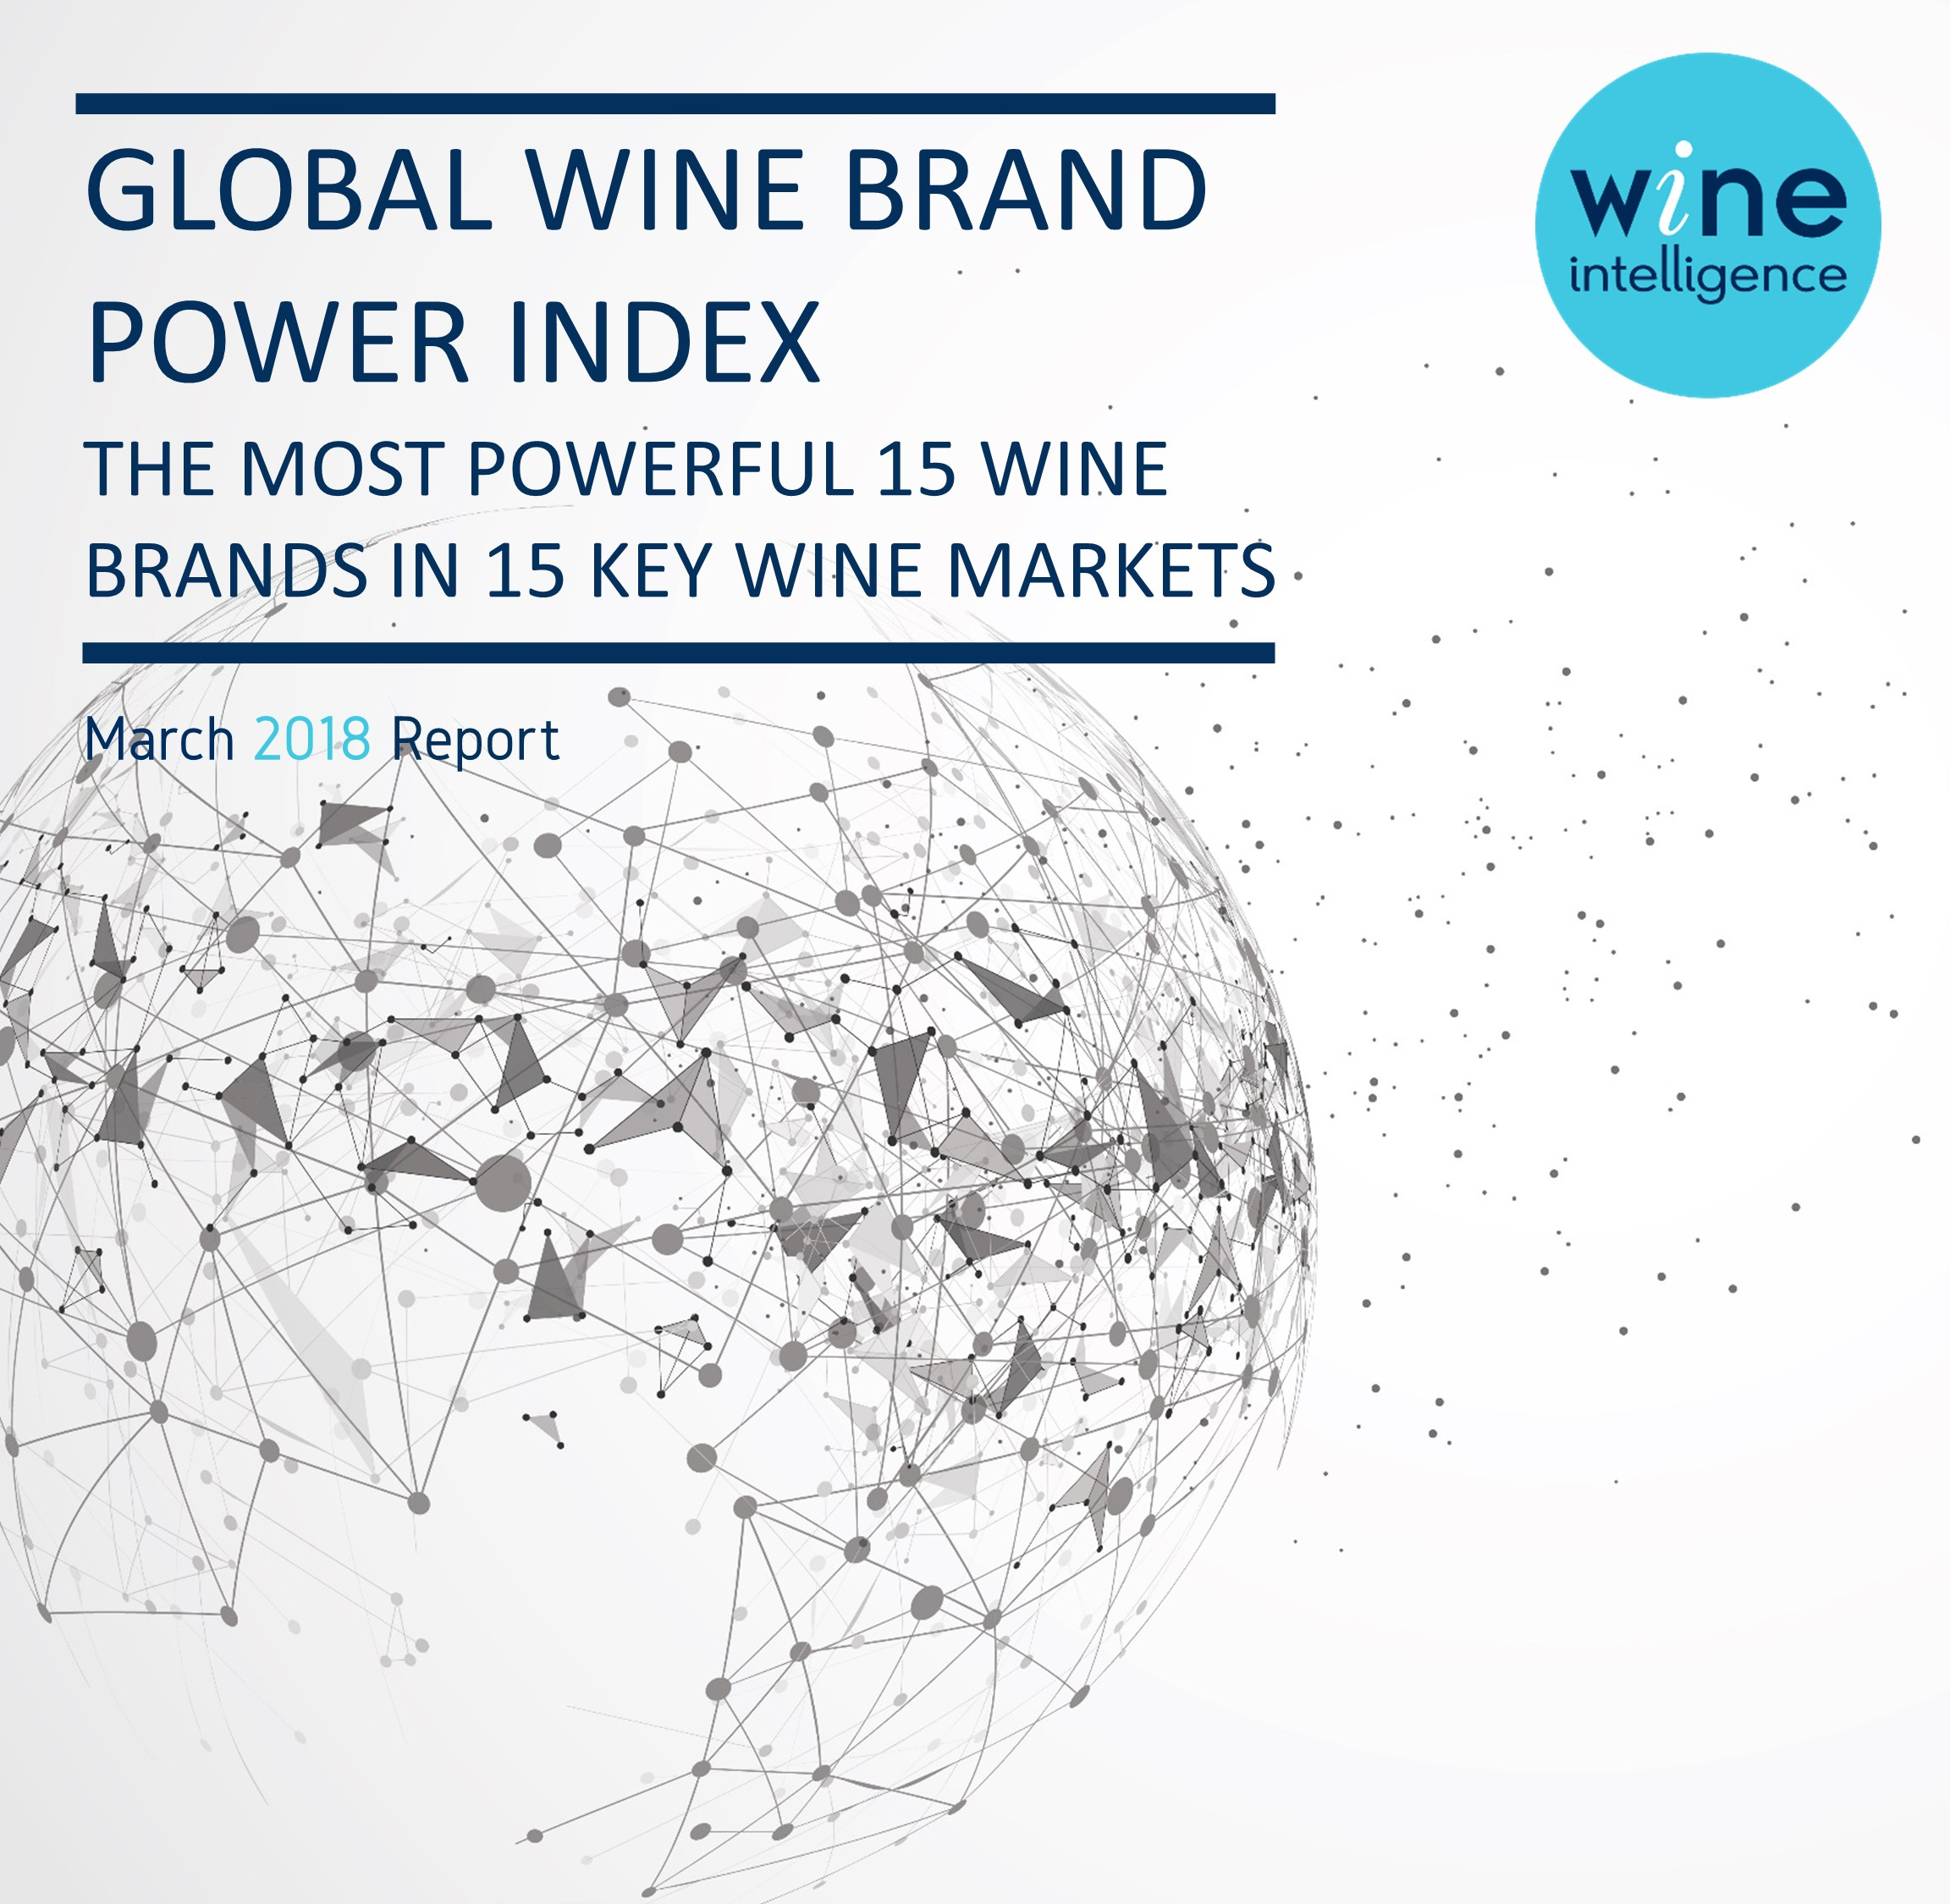 Brand Power Index 2018 - Press release: Wine Intelligence's first Global Wine Brand Power Index puts Yellow Tail and Casillero del Diablo as the world's strongest wine brands from a consumer point of view